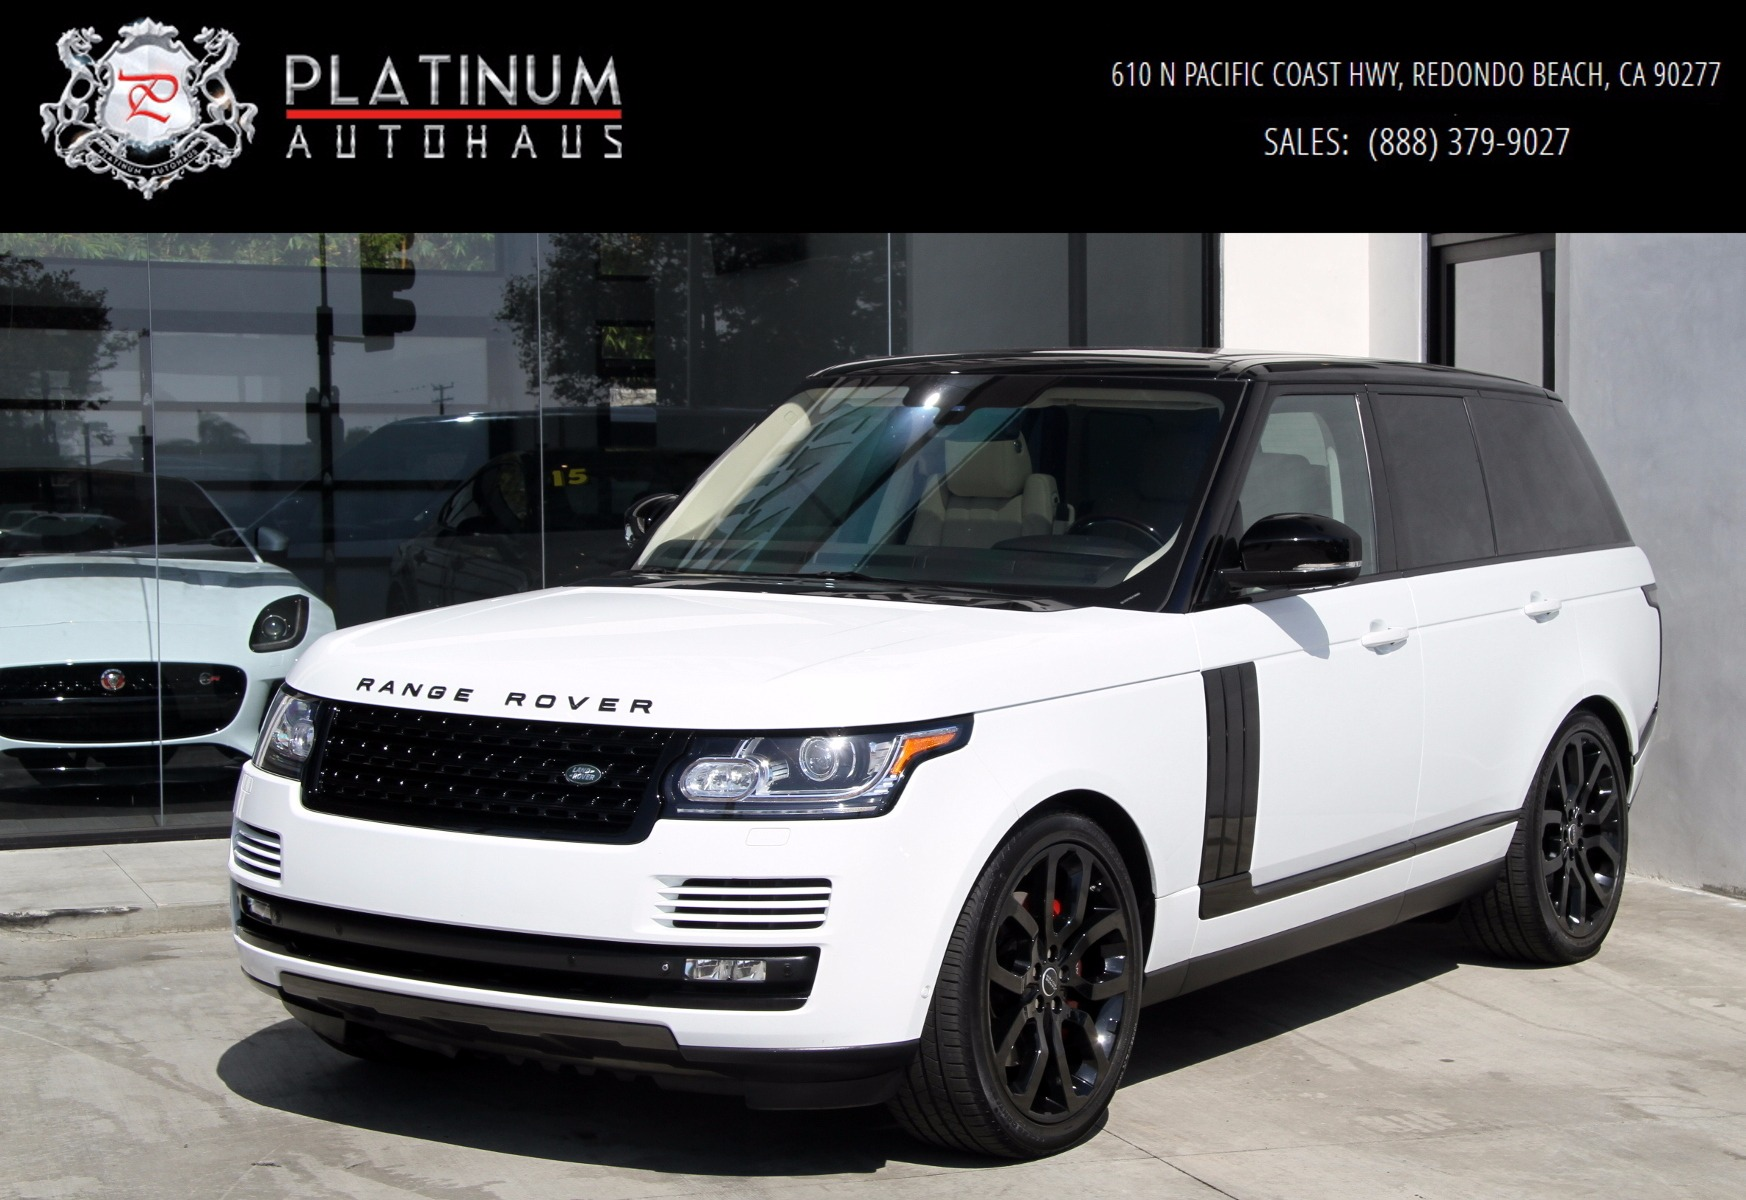 2014 Land Rover Range Rover Supercharged Stock for sale